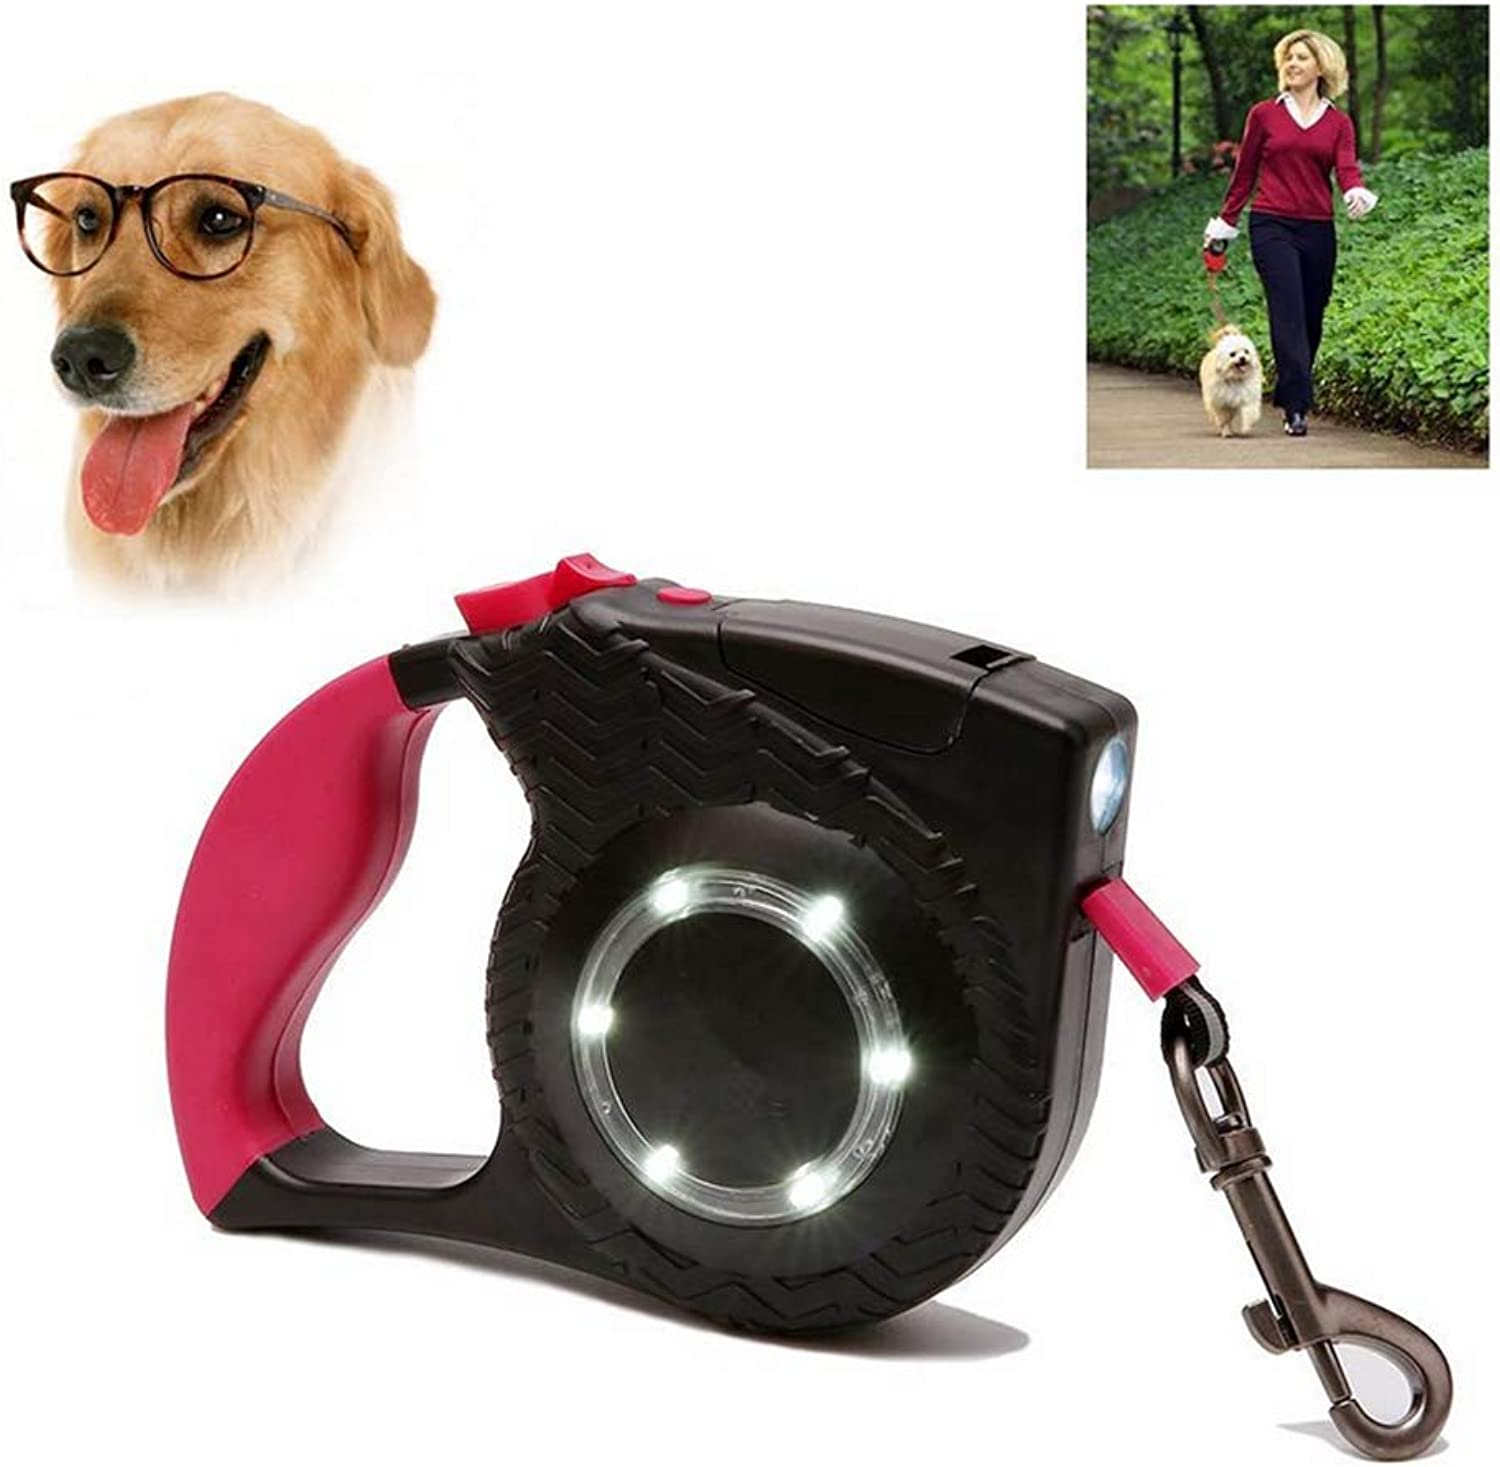 Dog Retractable Leads Heavy Duty Pet Leashes Portable Walk Jogging Suitable for 35kg Small and Medium Pets with LED Light, Three colors Optional 4m